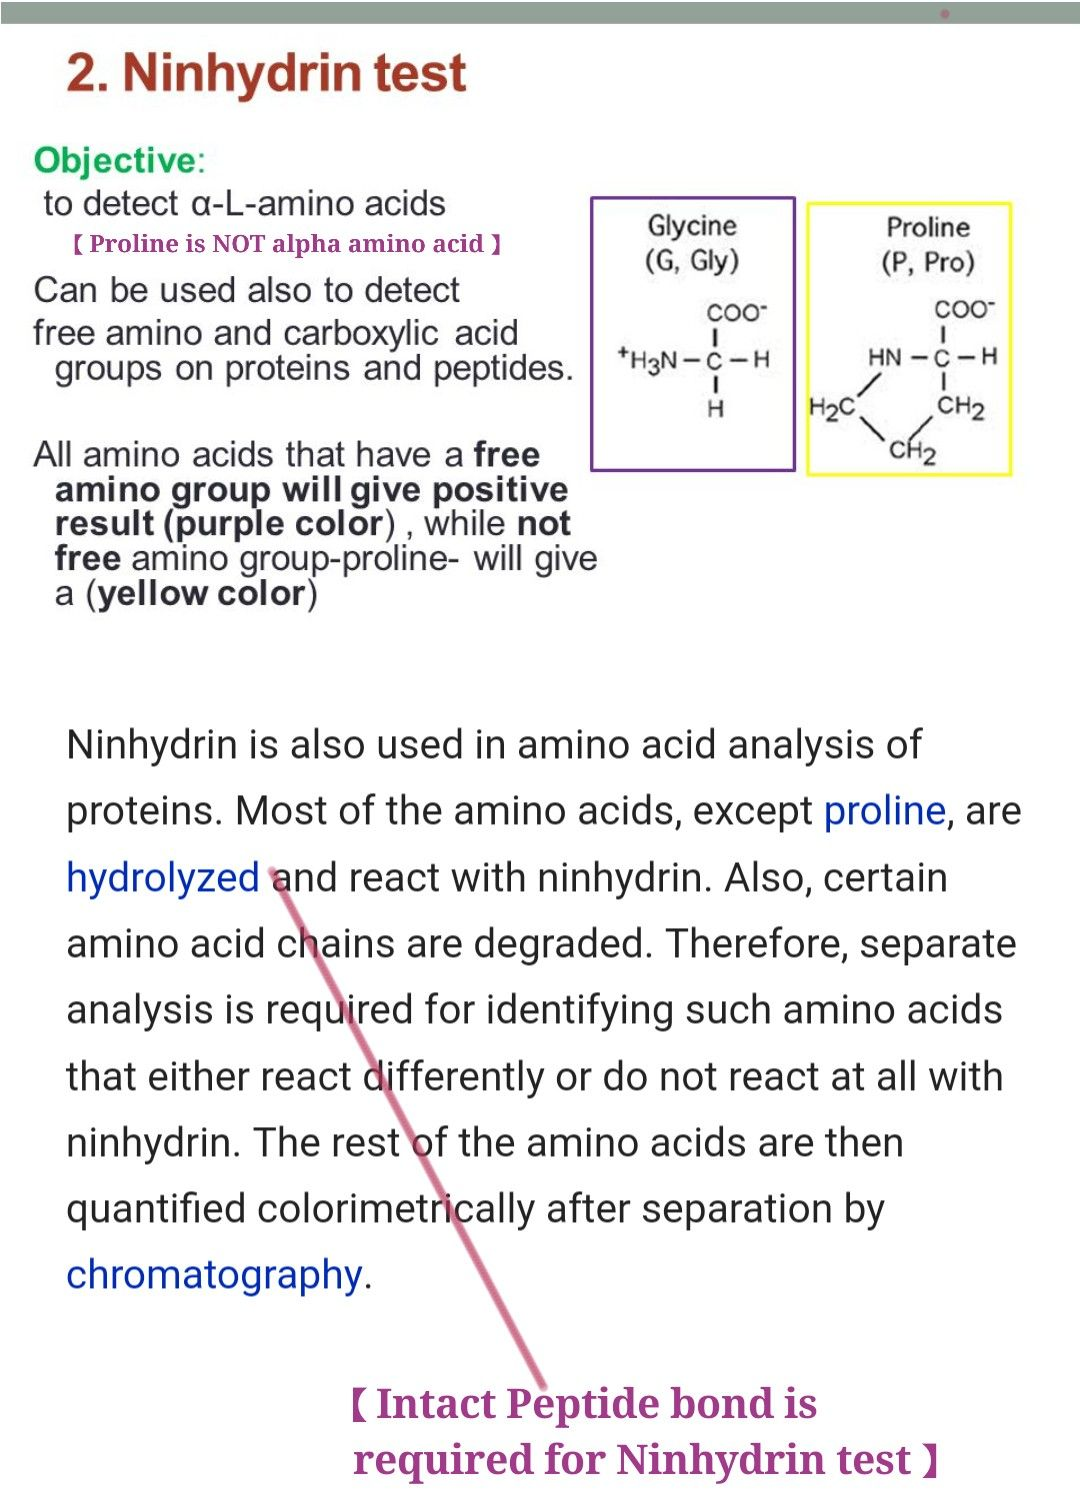 Ninhydrin Test For Alpha Amino Acid   Proline Peptide Bond